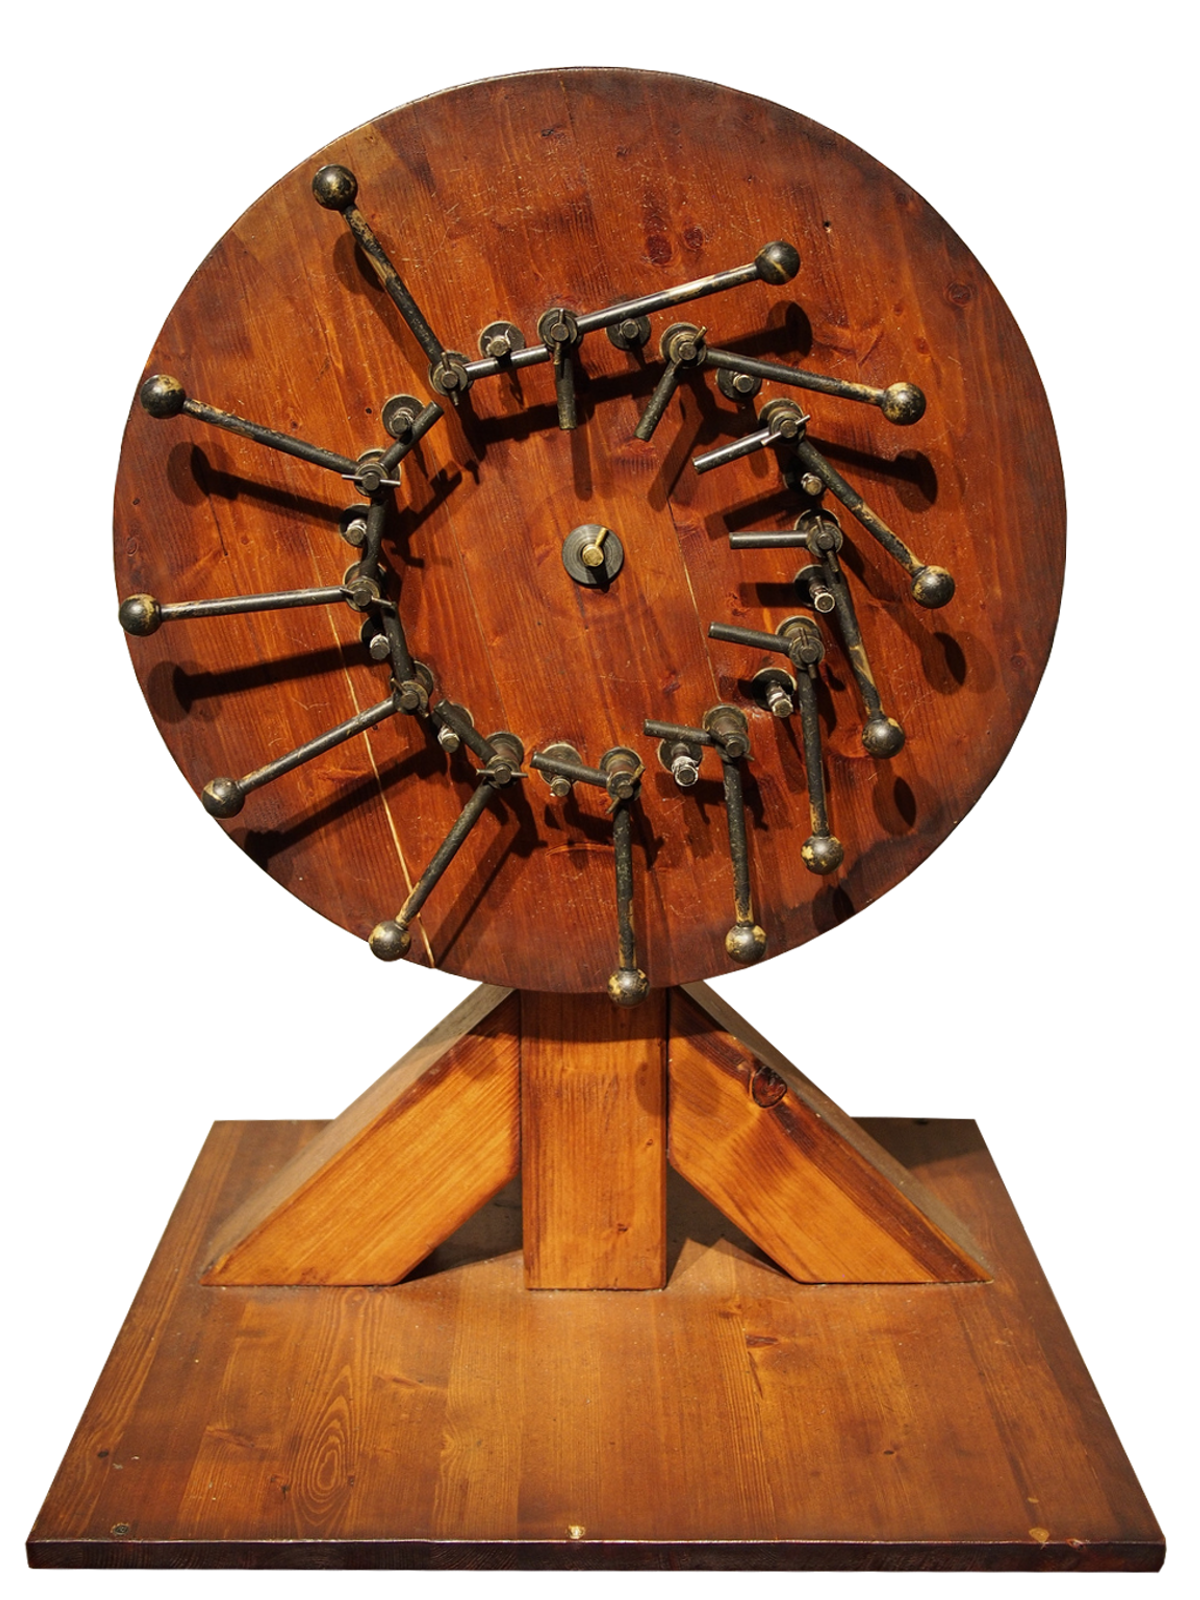 Leonardo da Vinci's Perpetual Motion Machine | Warehouse ...